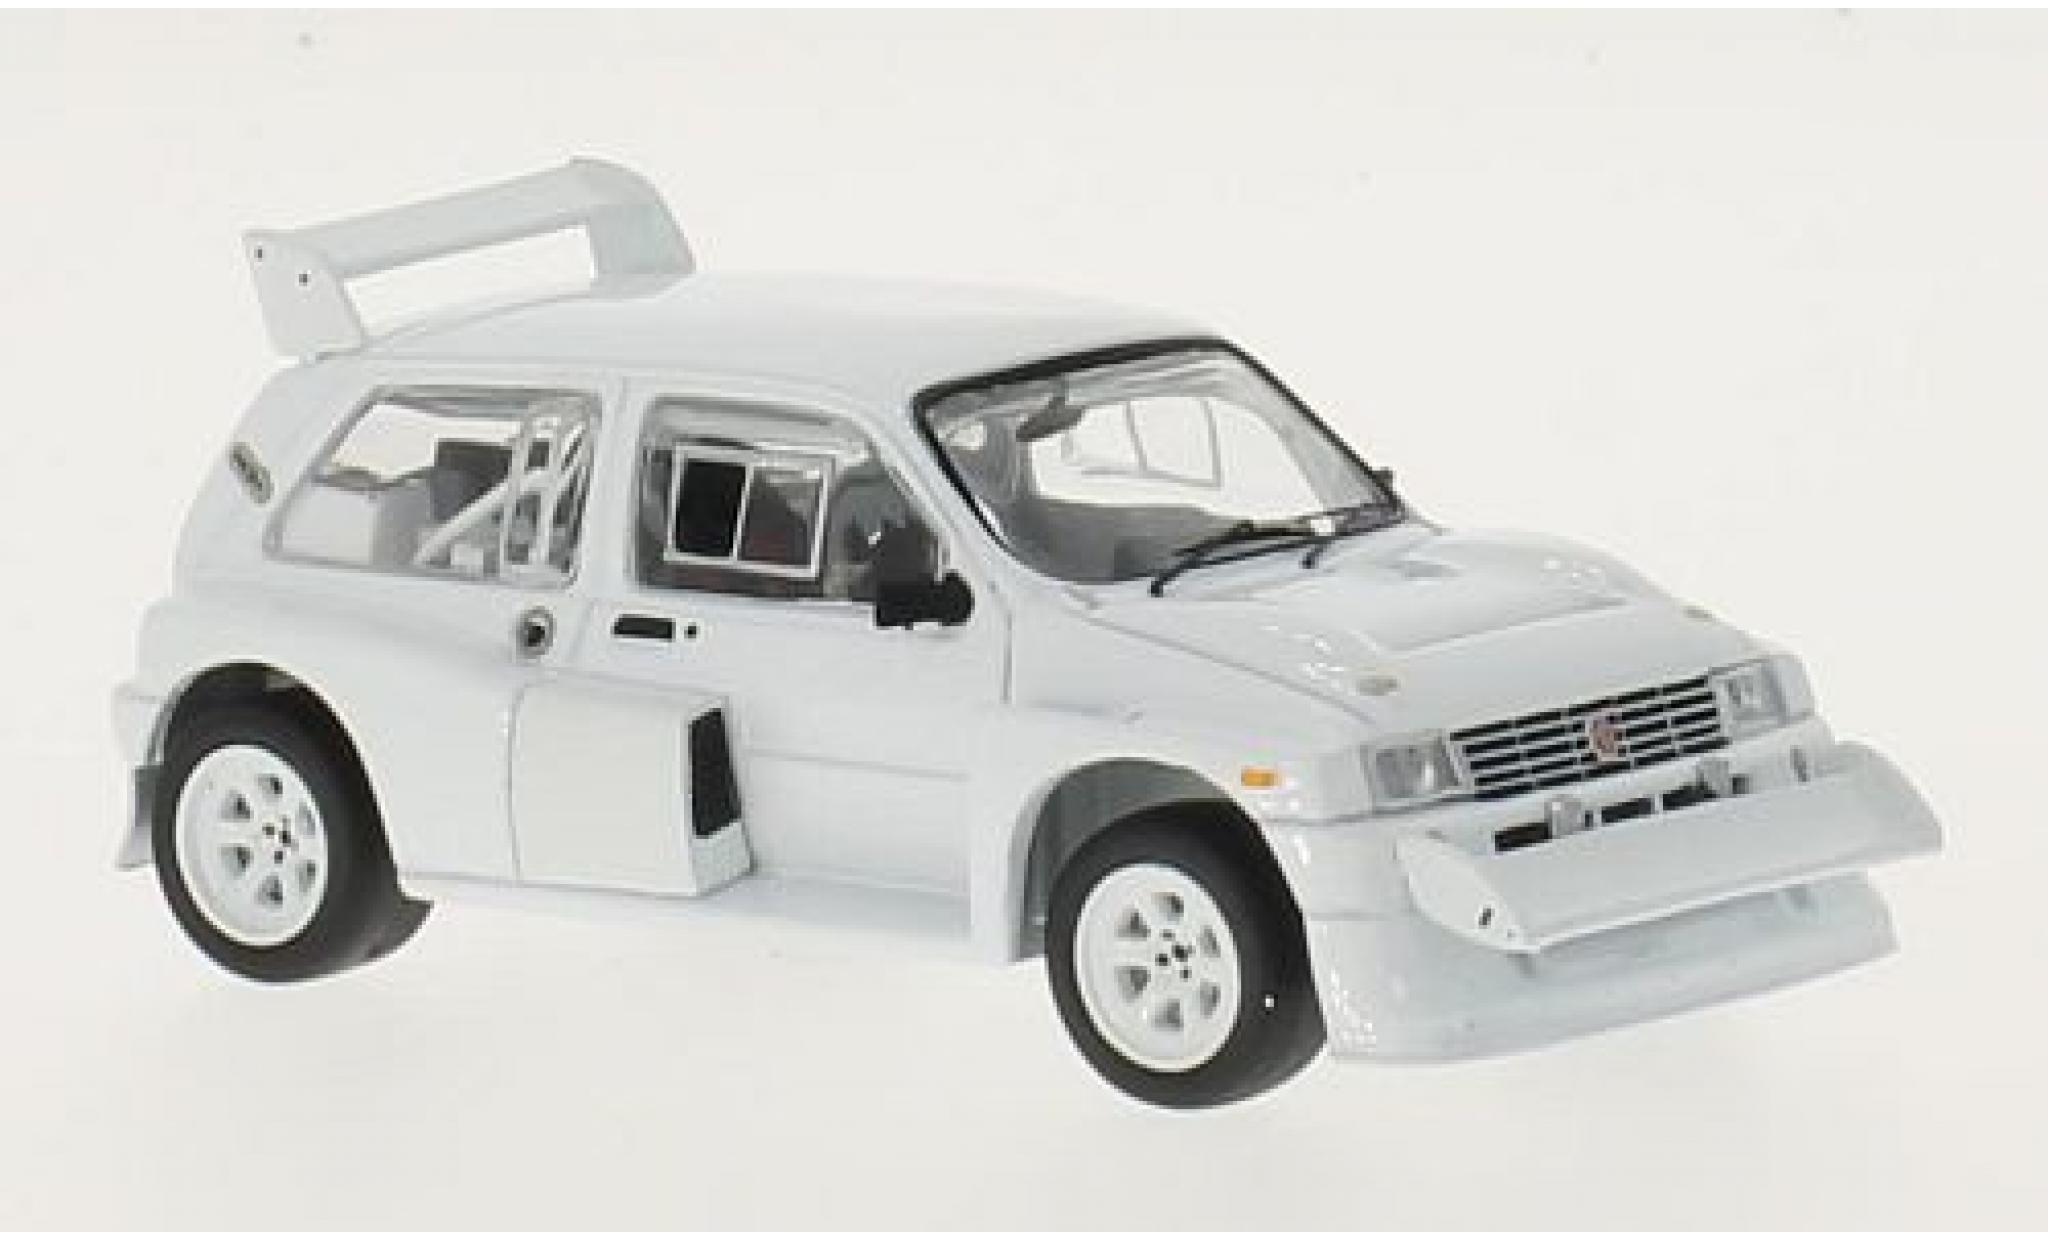 MG Metro 1/43 IXO 6R4 blanche RHD 1985 Plain Body Version y compris les 4 Ersatzräder